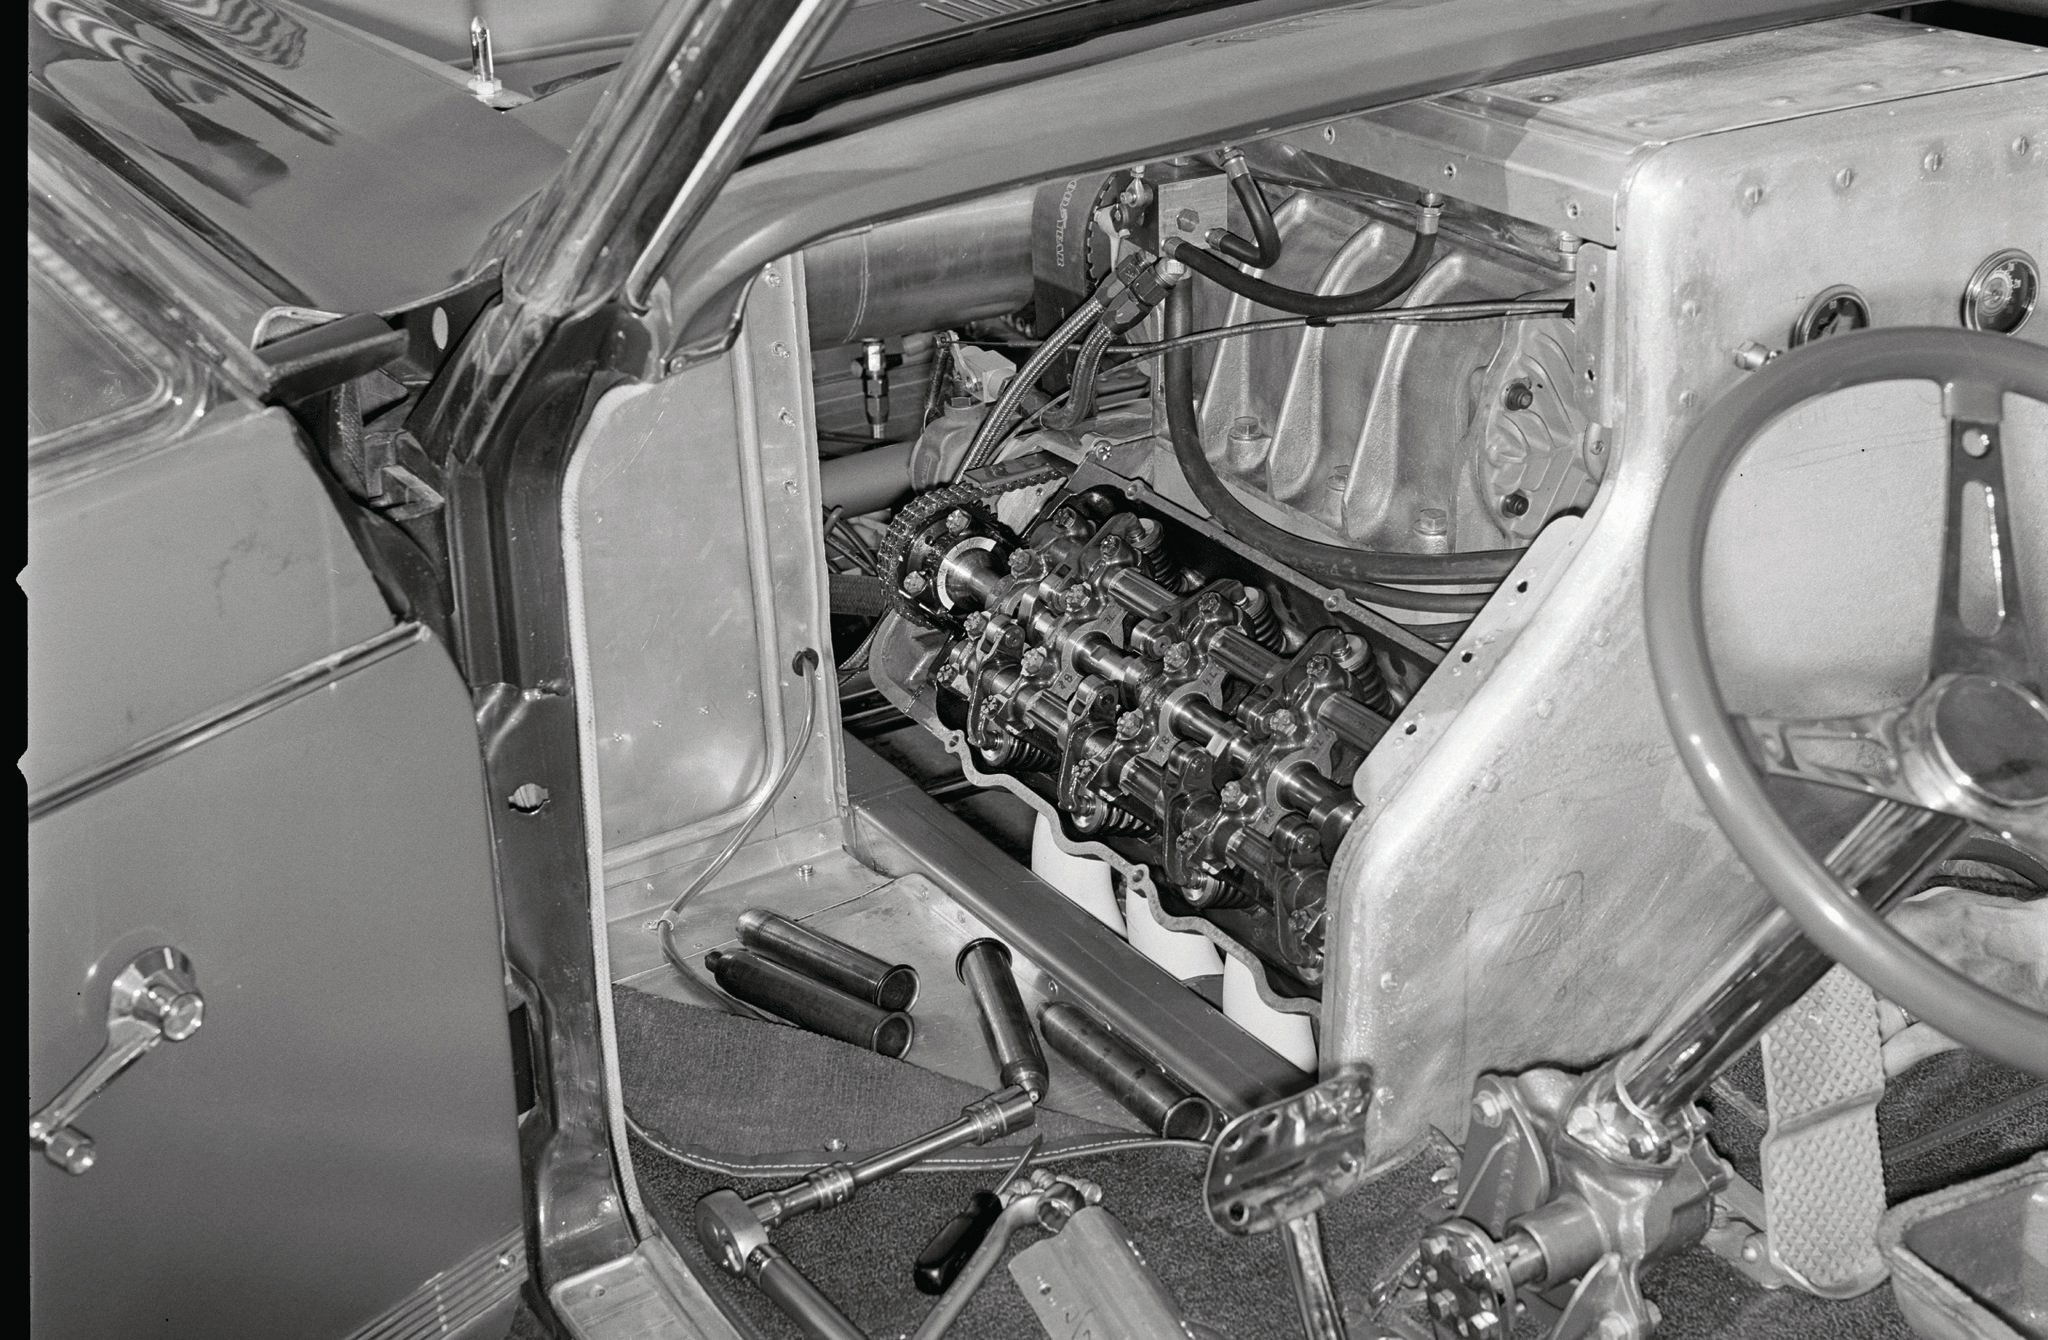 This was Jack Chrisman's take on the A/FX evolution revolution in 1965. Extreme engine setback, supercharger, and a jug of pop differentiated his Cyclone from Dyno Don's. The half-in, half-out Cammer led to flip-top fiberglass bodies for ease of maintenance as well as lighter weight, as can be seen in this shot.